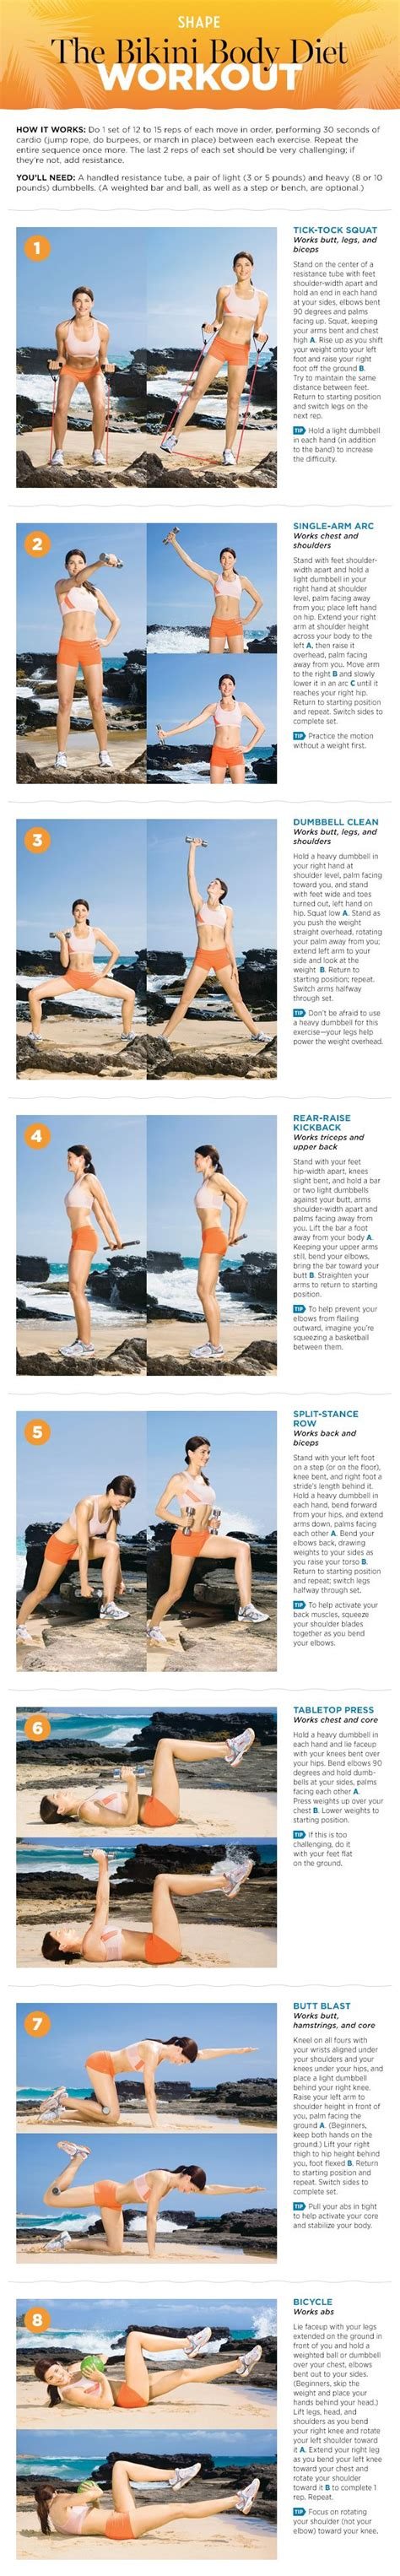 body toners diet picture 11